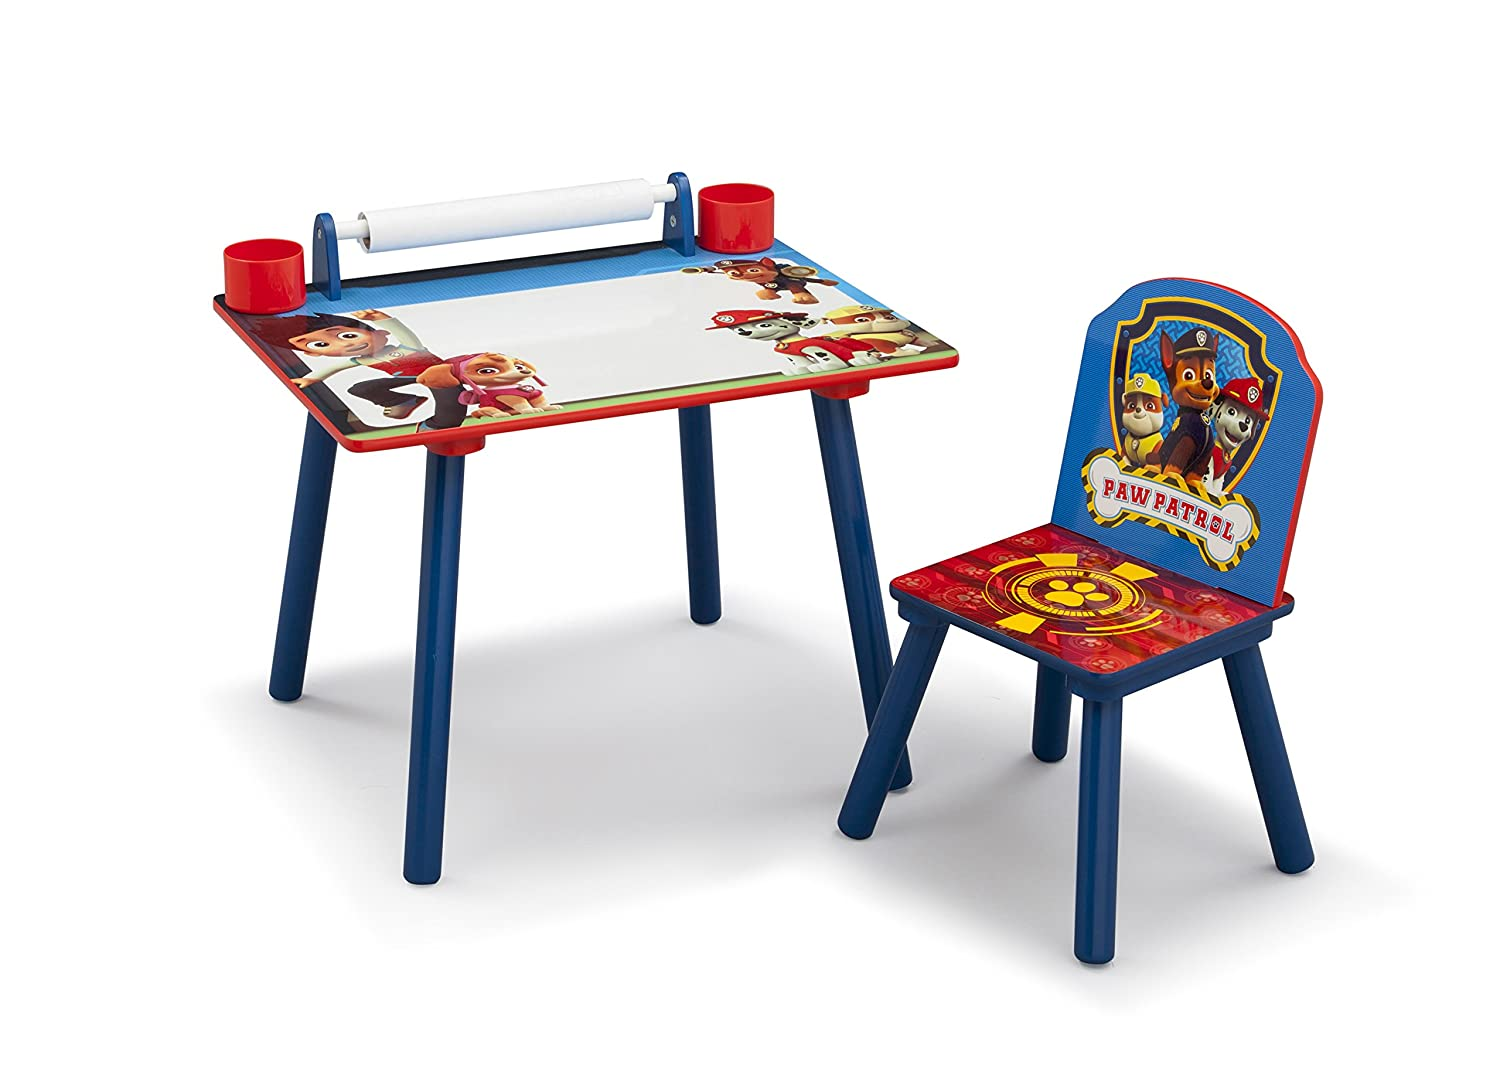 PAW Patrol Art Desk with Dry-Erase Tabletop and Color Book Paper Roll, Nick Jr. Delta Children TT89571PW-1121